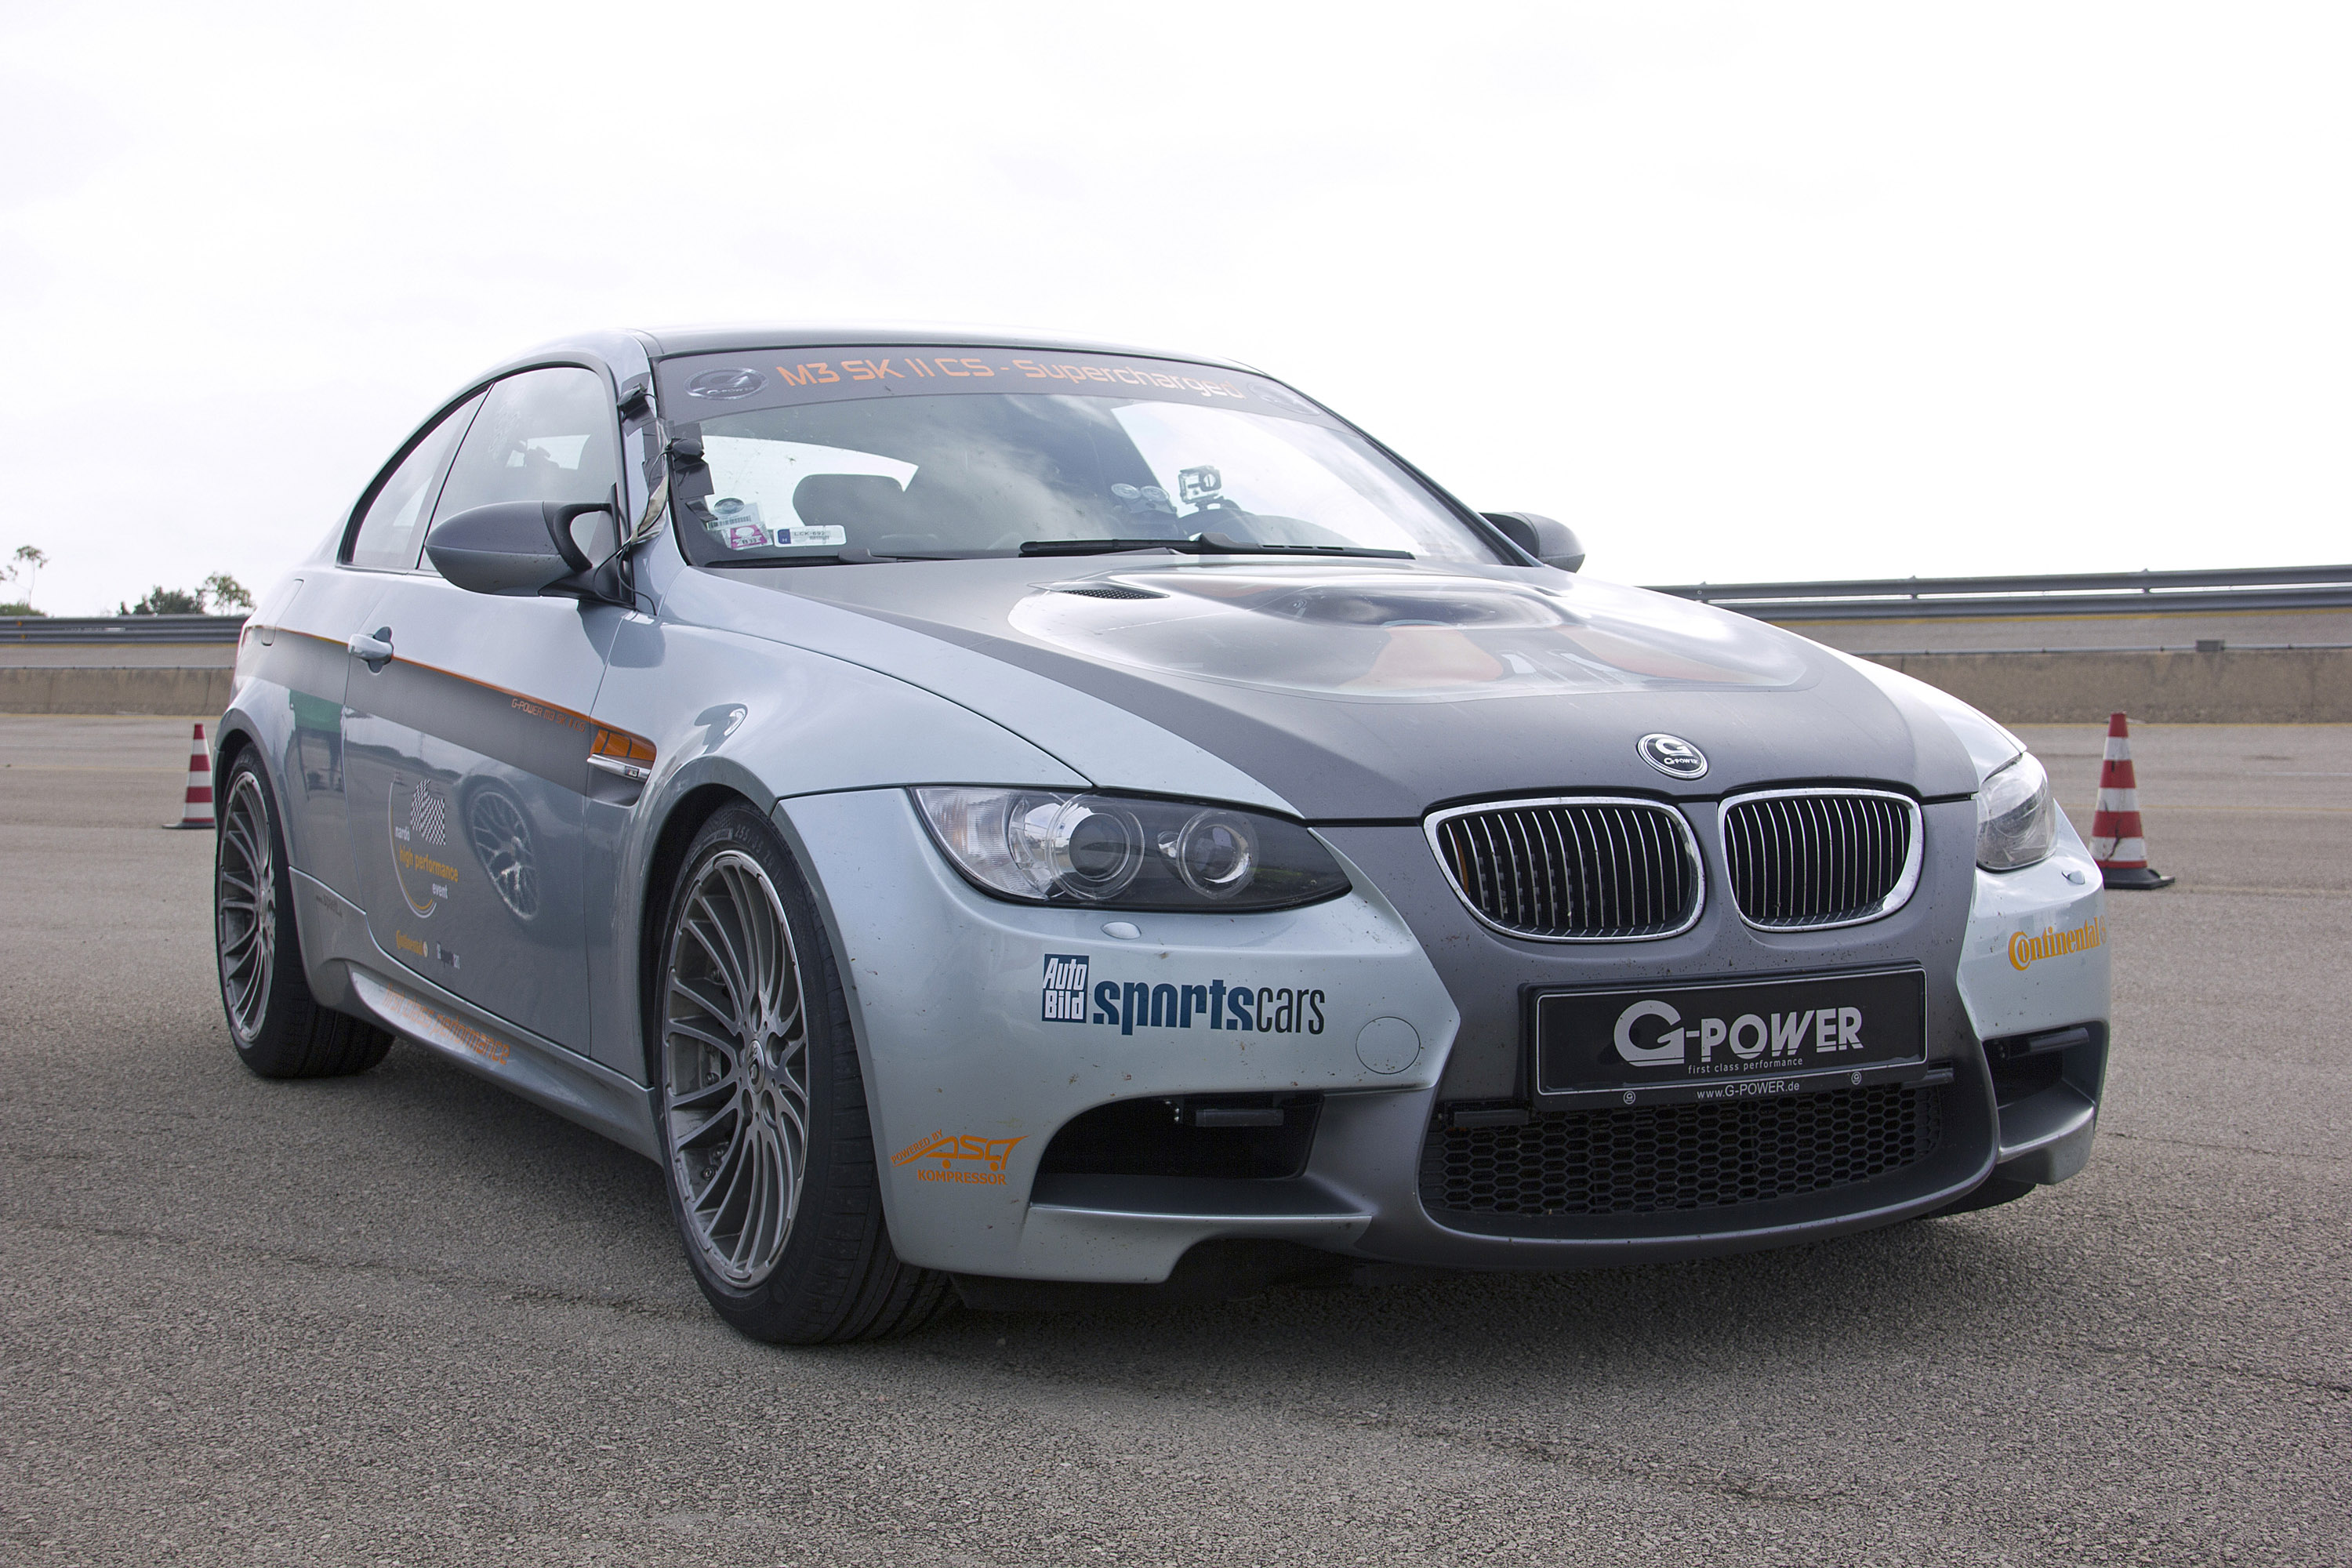 http://www.automobilesreview.com/img/g-power-bmw-m3-e92-hurricane-337-edition/g-power-bmw-m3-e92-hurricane-337-edition-06.jpg